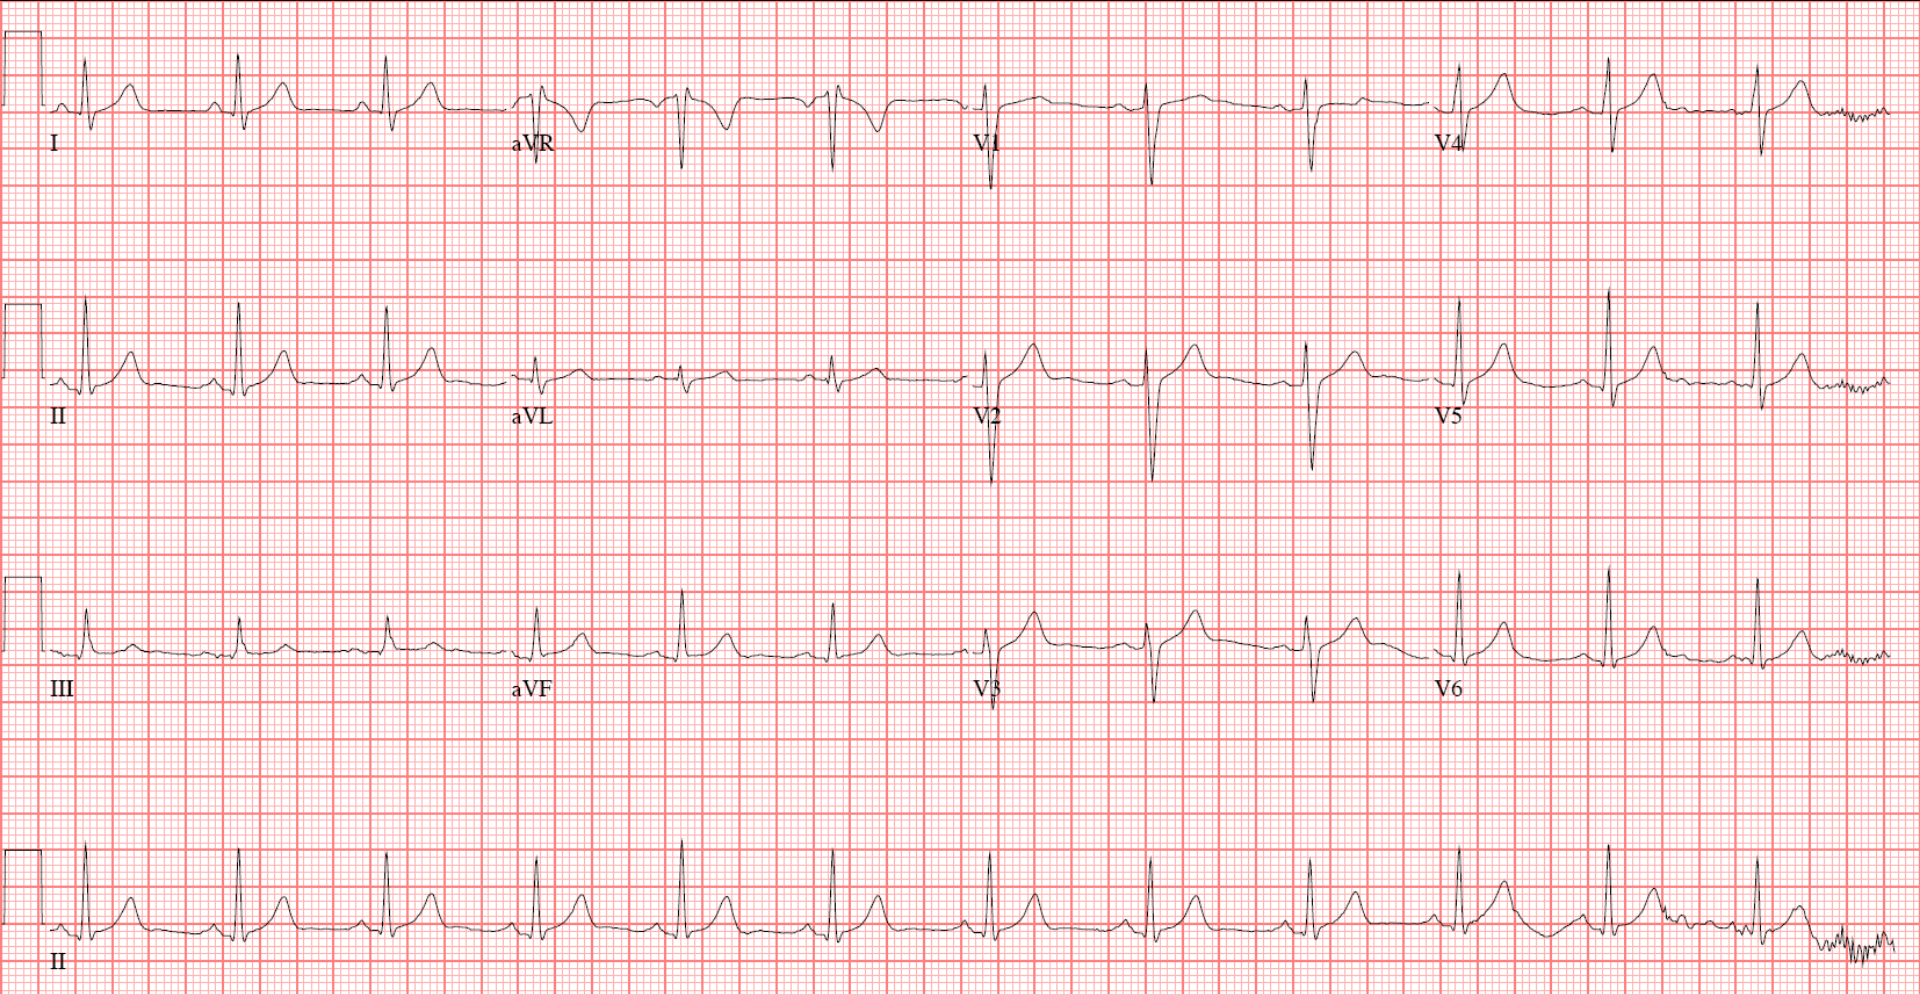 Abnormal 12 lead ecg